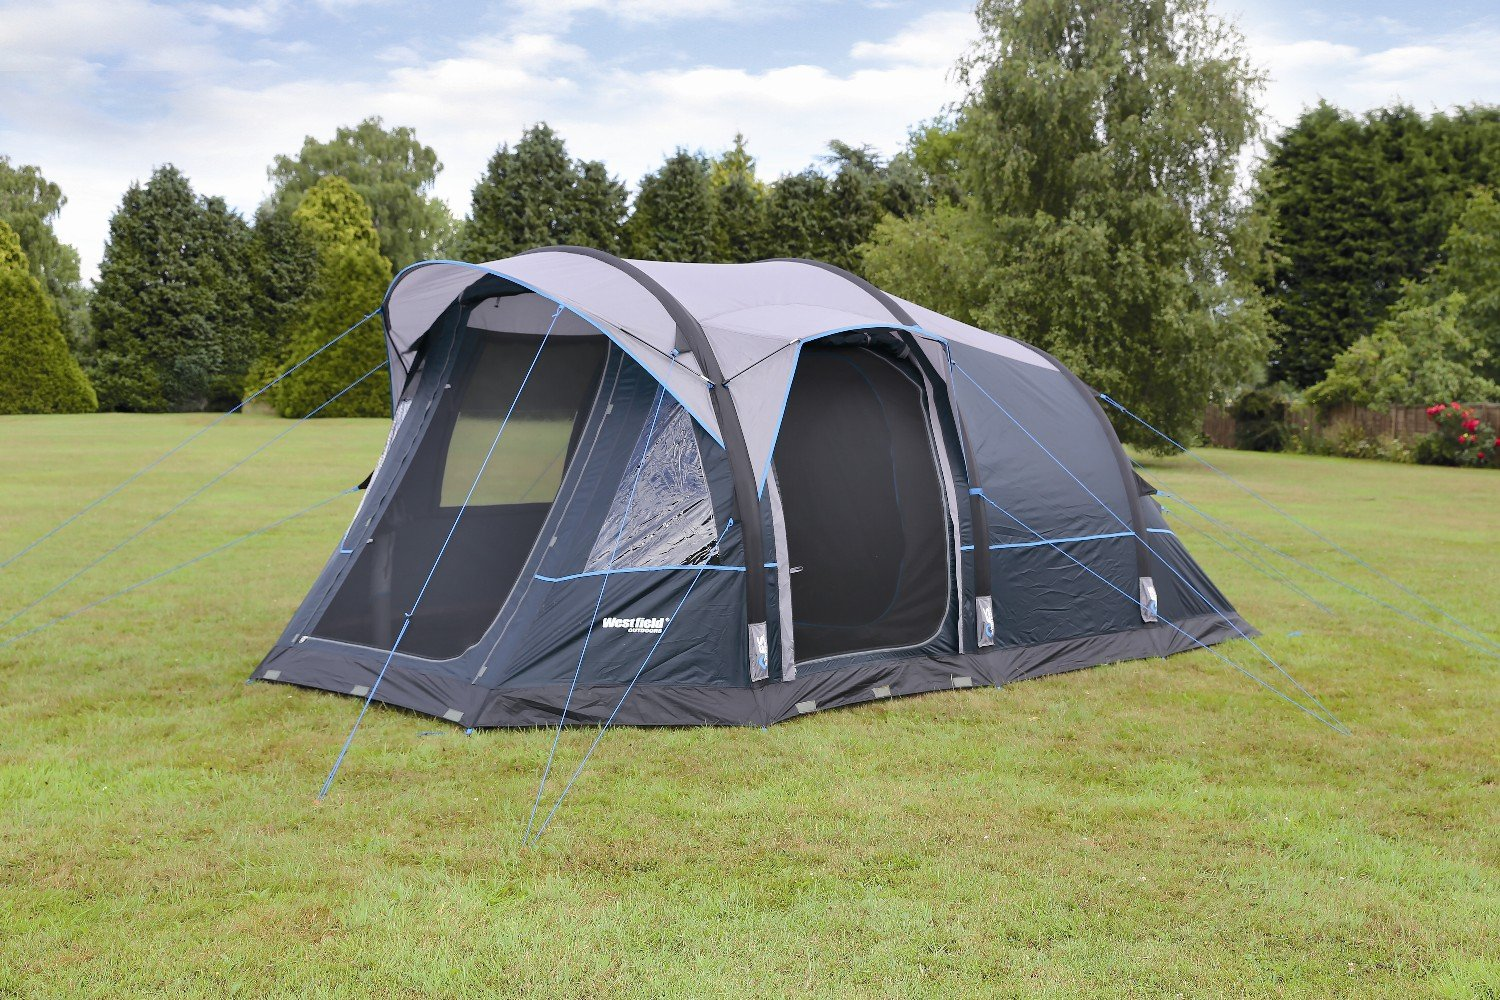 Travel Smart Orion 4 Inflatable Air Tent Amazon.co.uk Sports u0026 Outdoors : smart tents - memphite.com